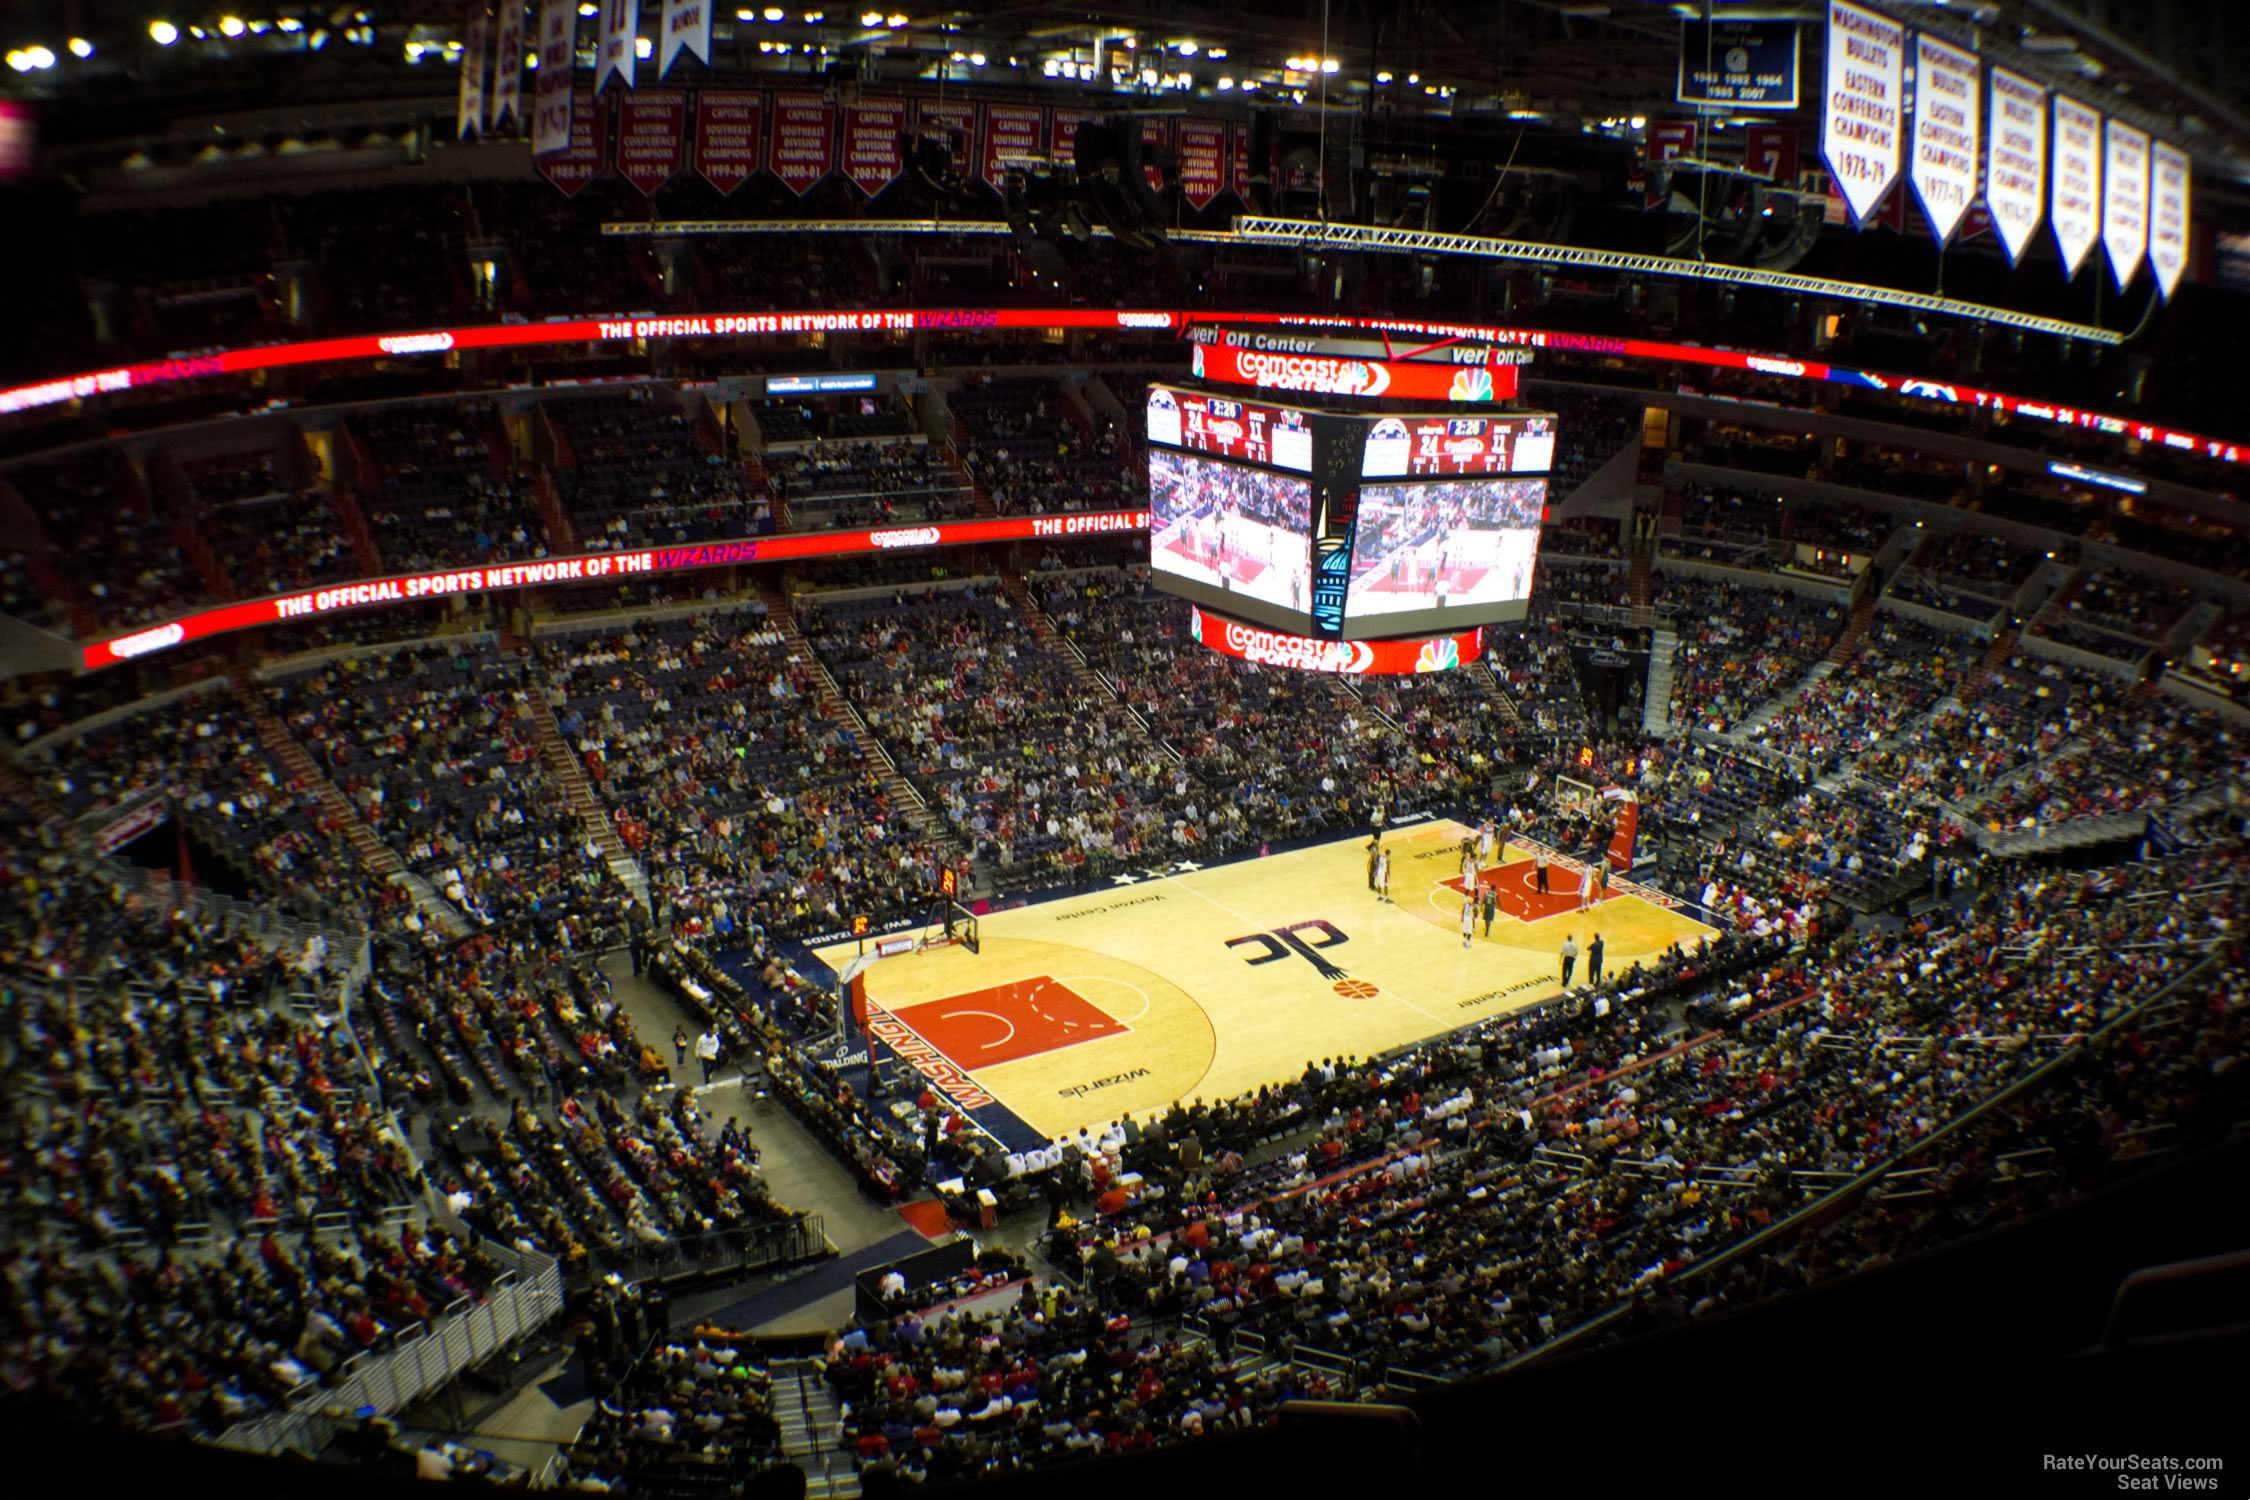 Section 430 seat view